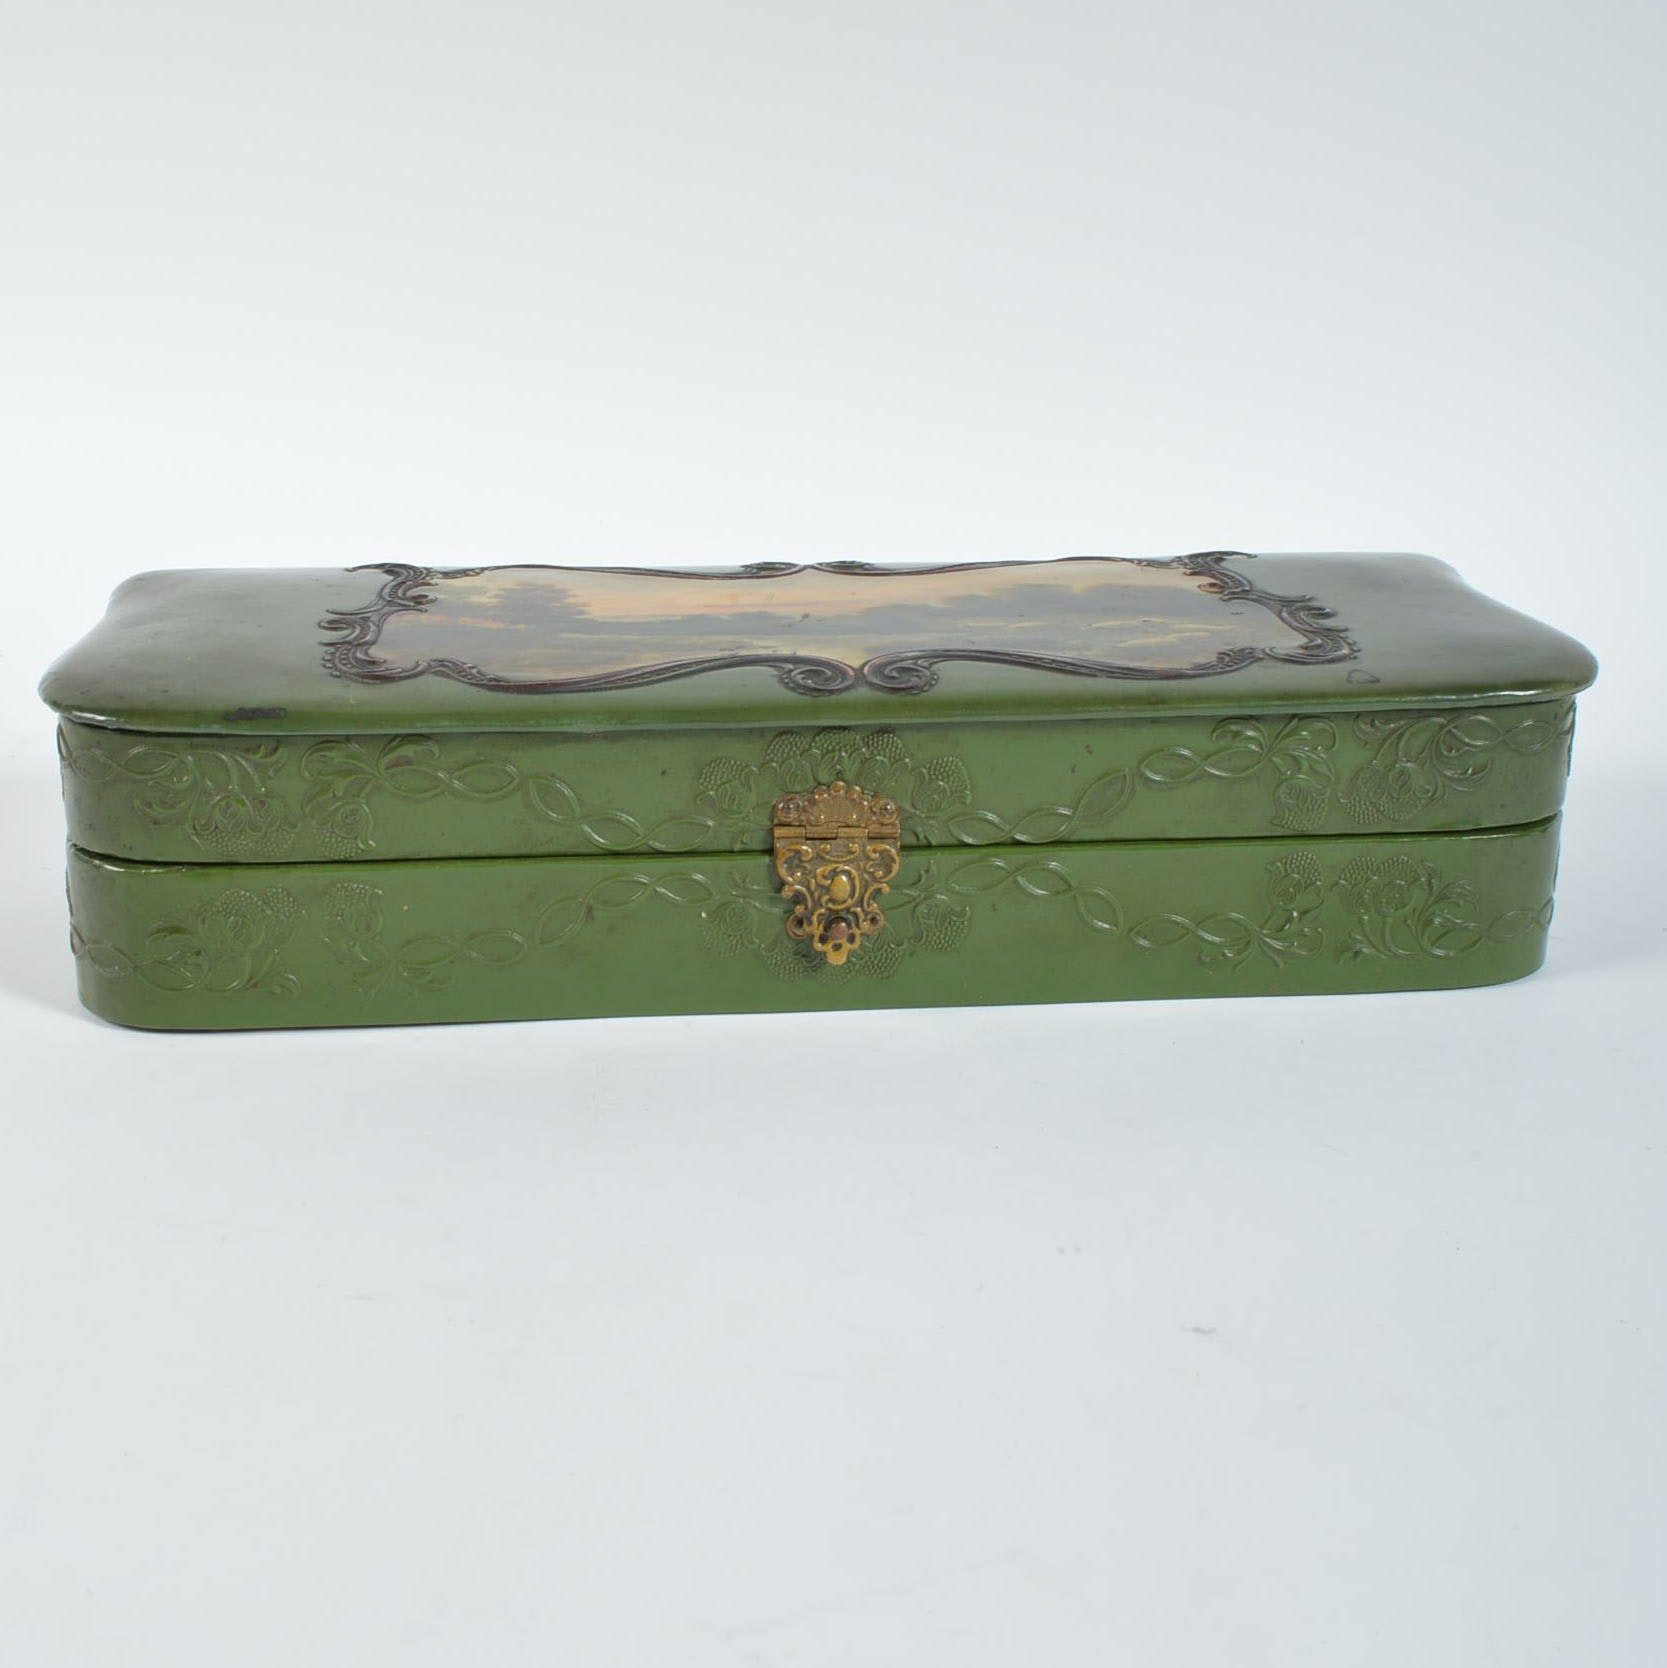 Vintage Decoupaged Box with Pastoral Image